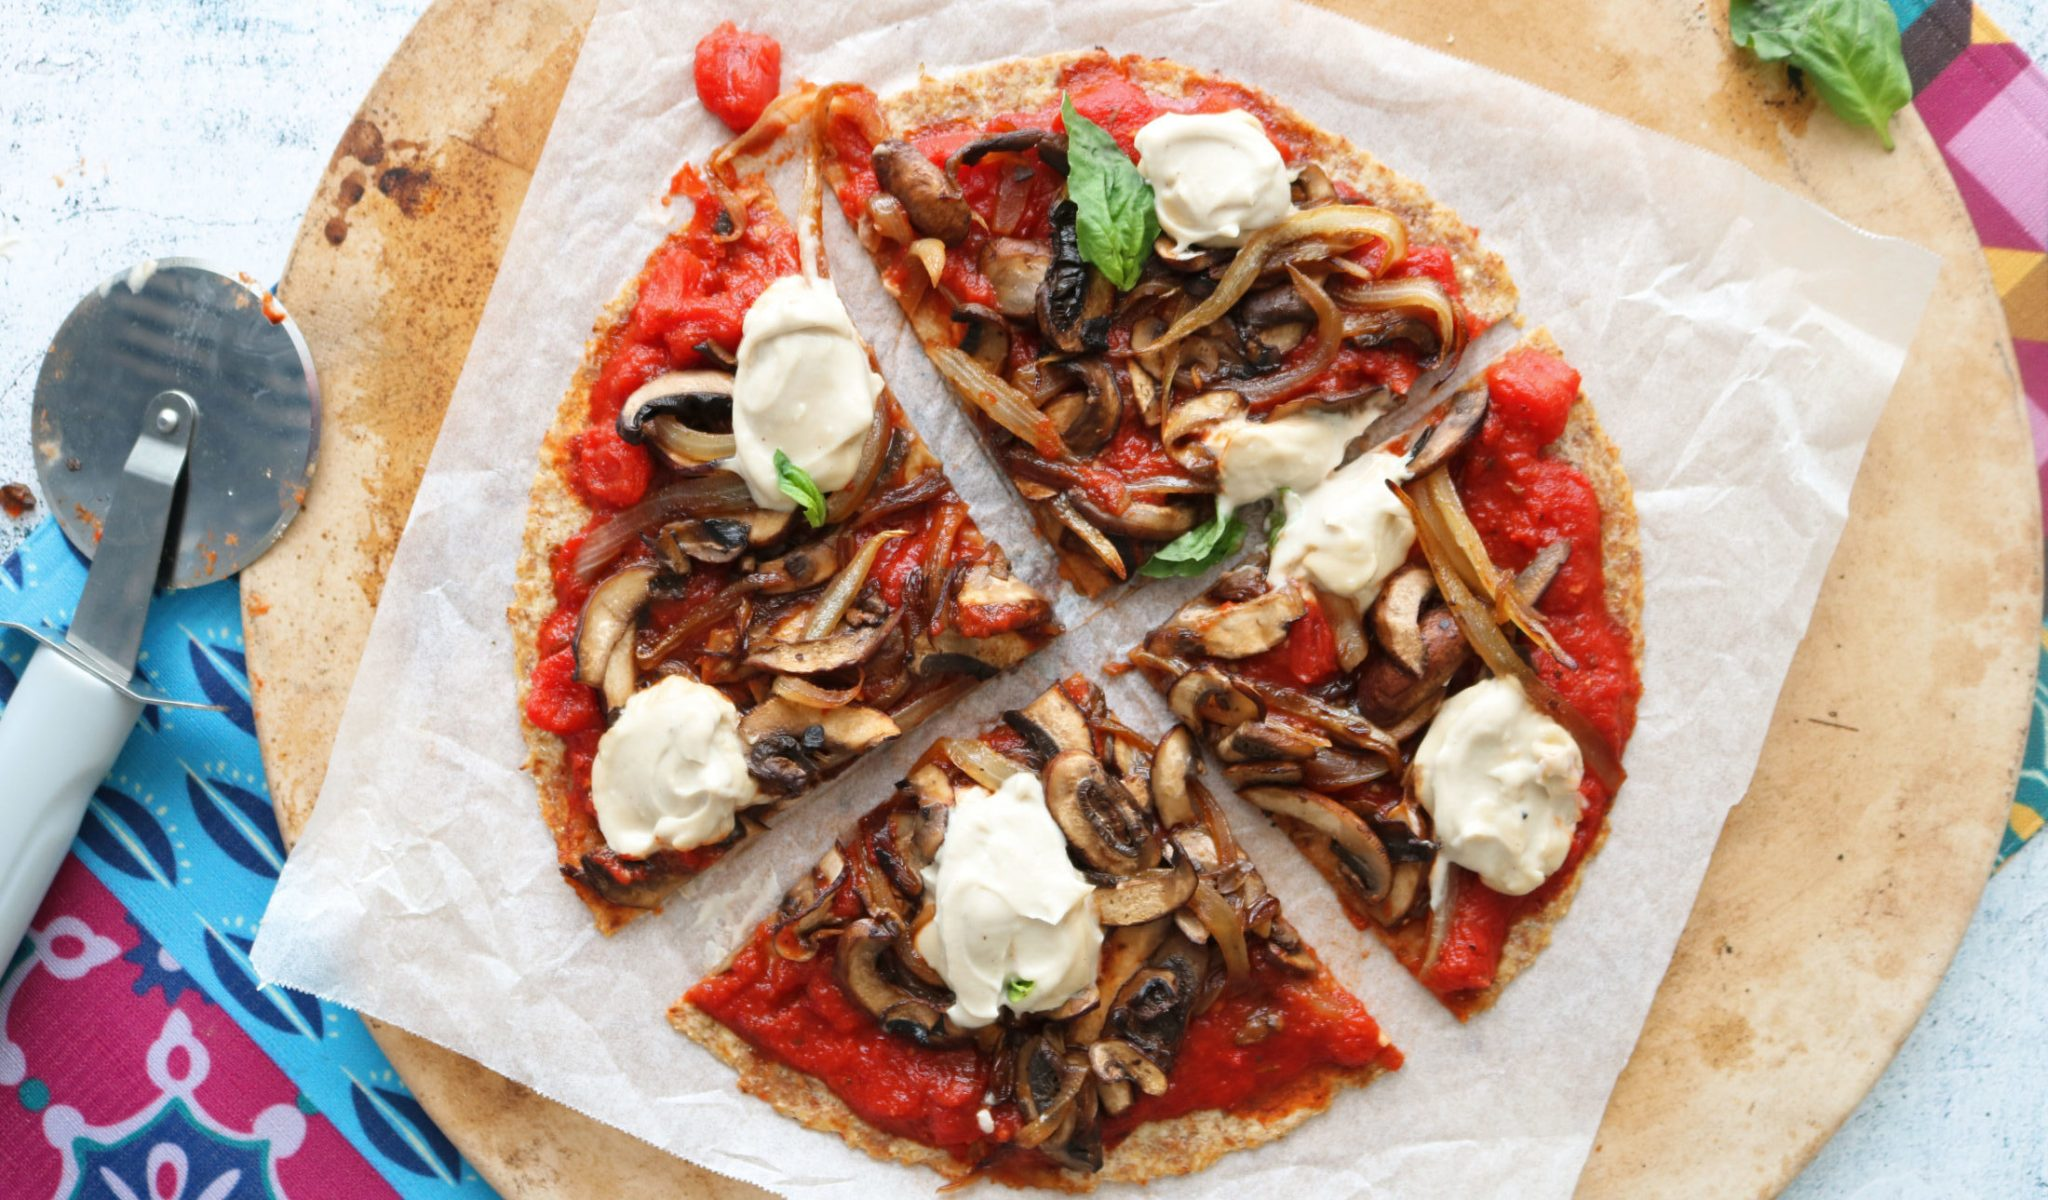 Vegan Pizza Recipe | Mushroom and Caramelized Onion